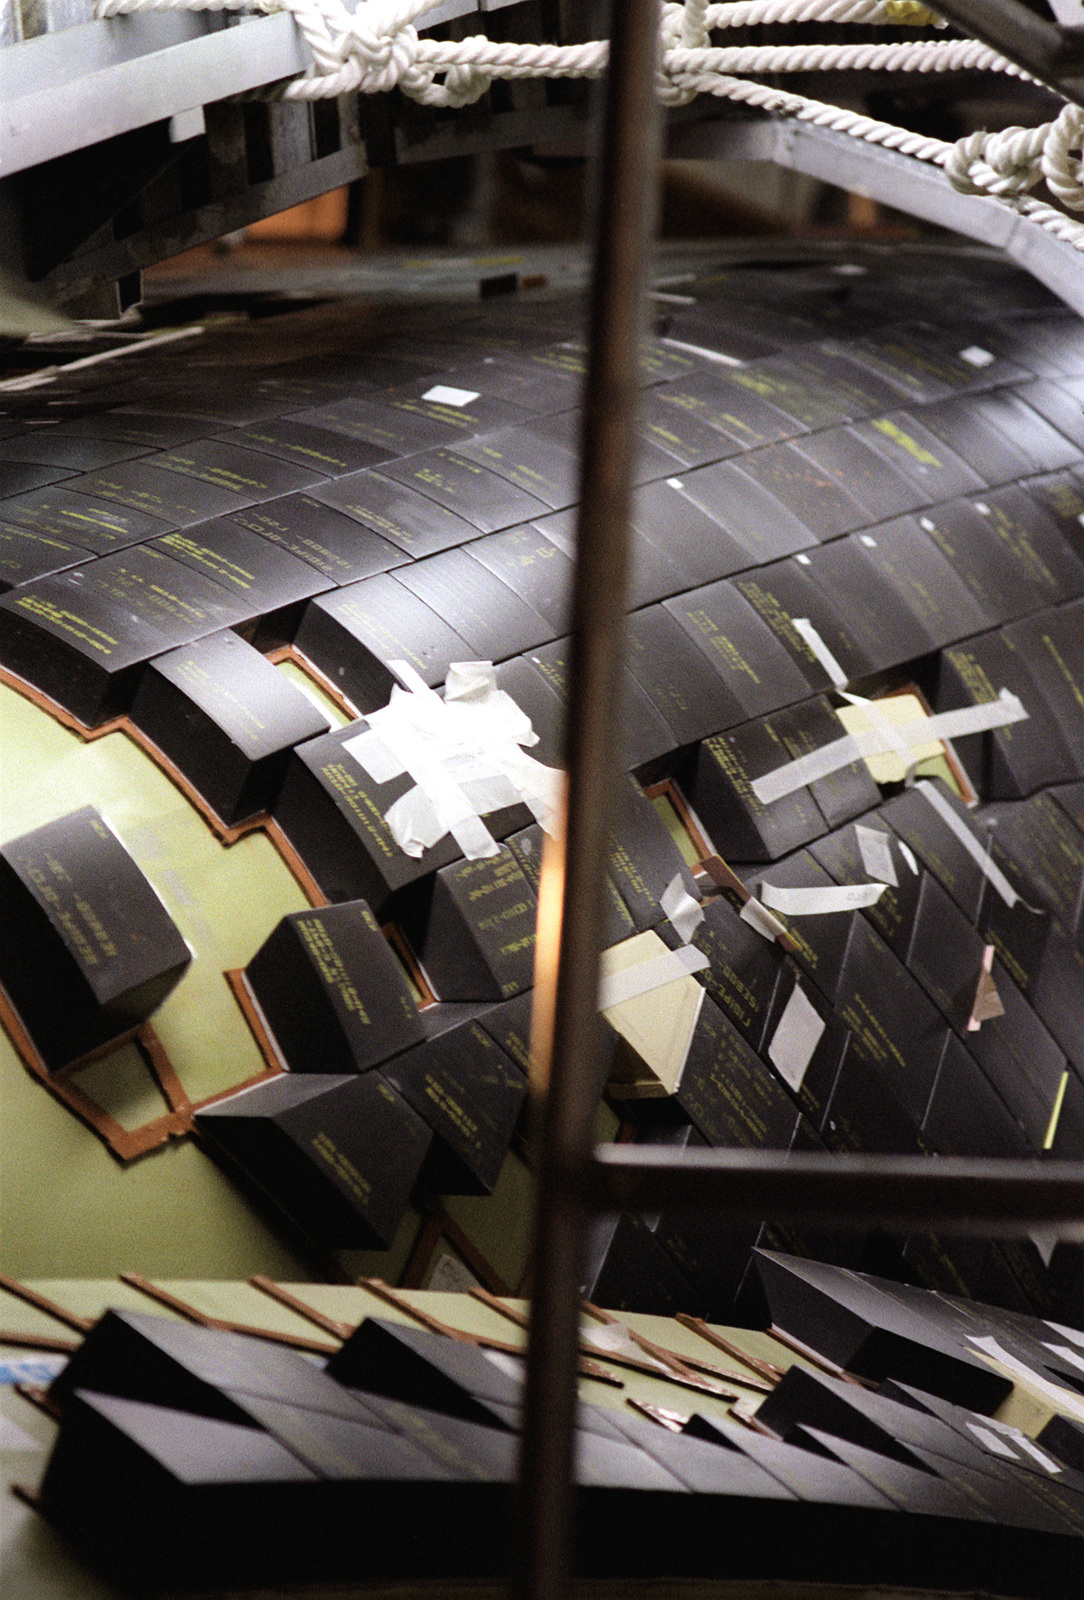 A view of tiles on the space shuttle Columbia at the Kennedy Space Center